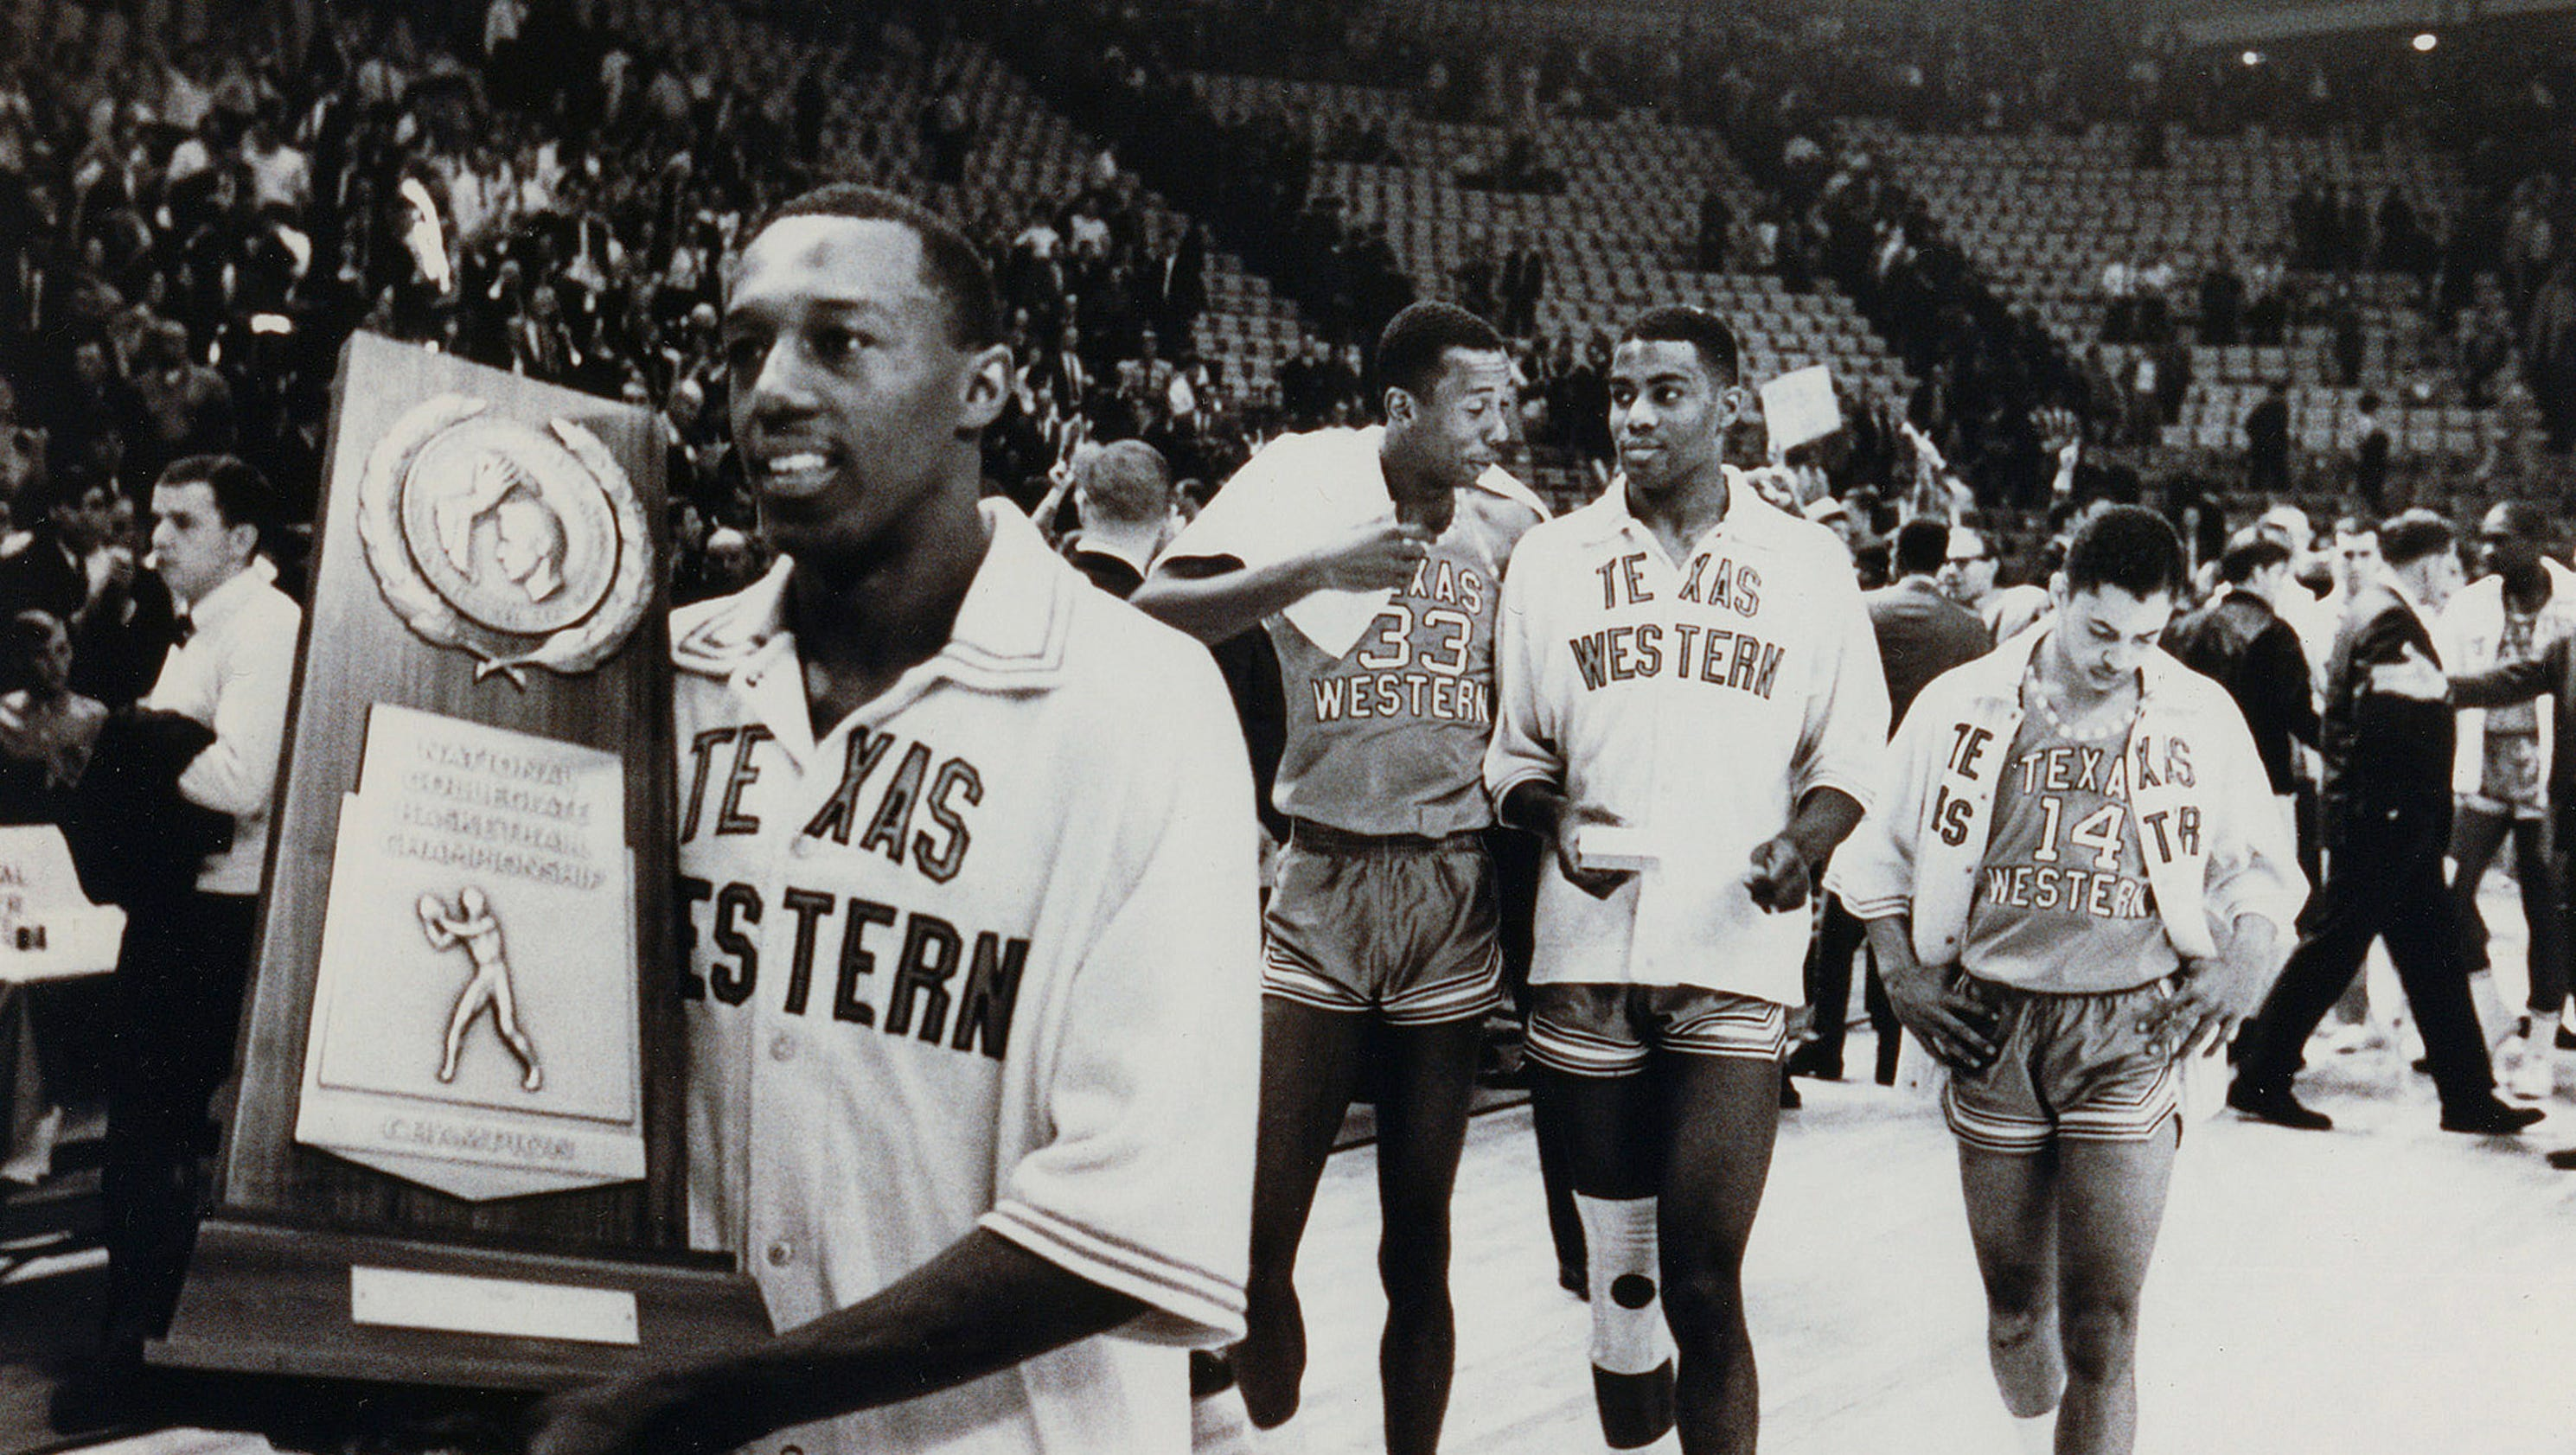 1966 miners national champs defeat kentucky for title